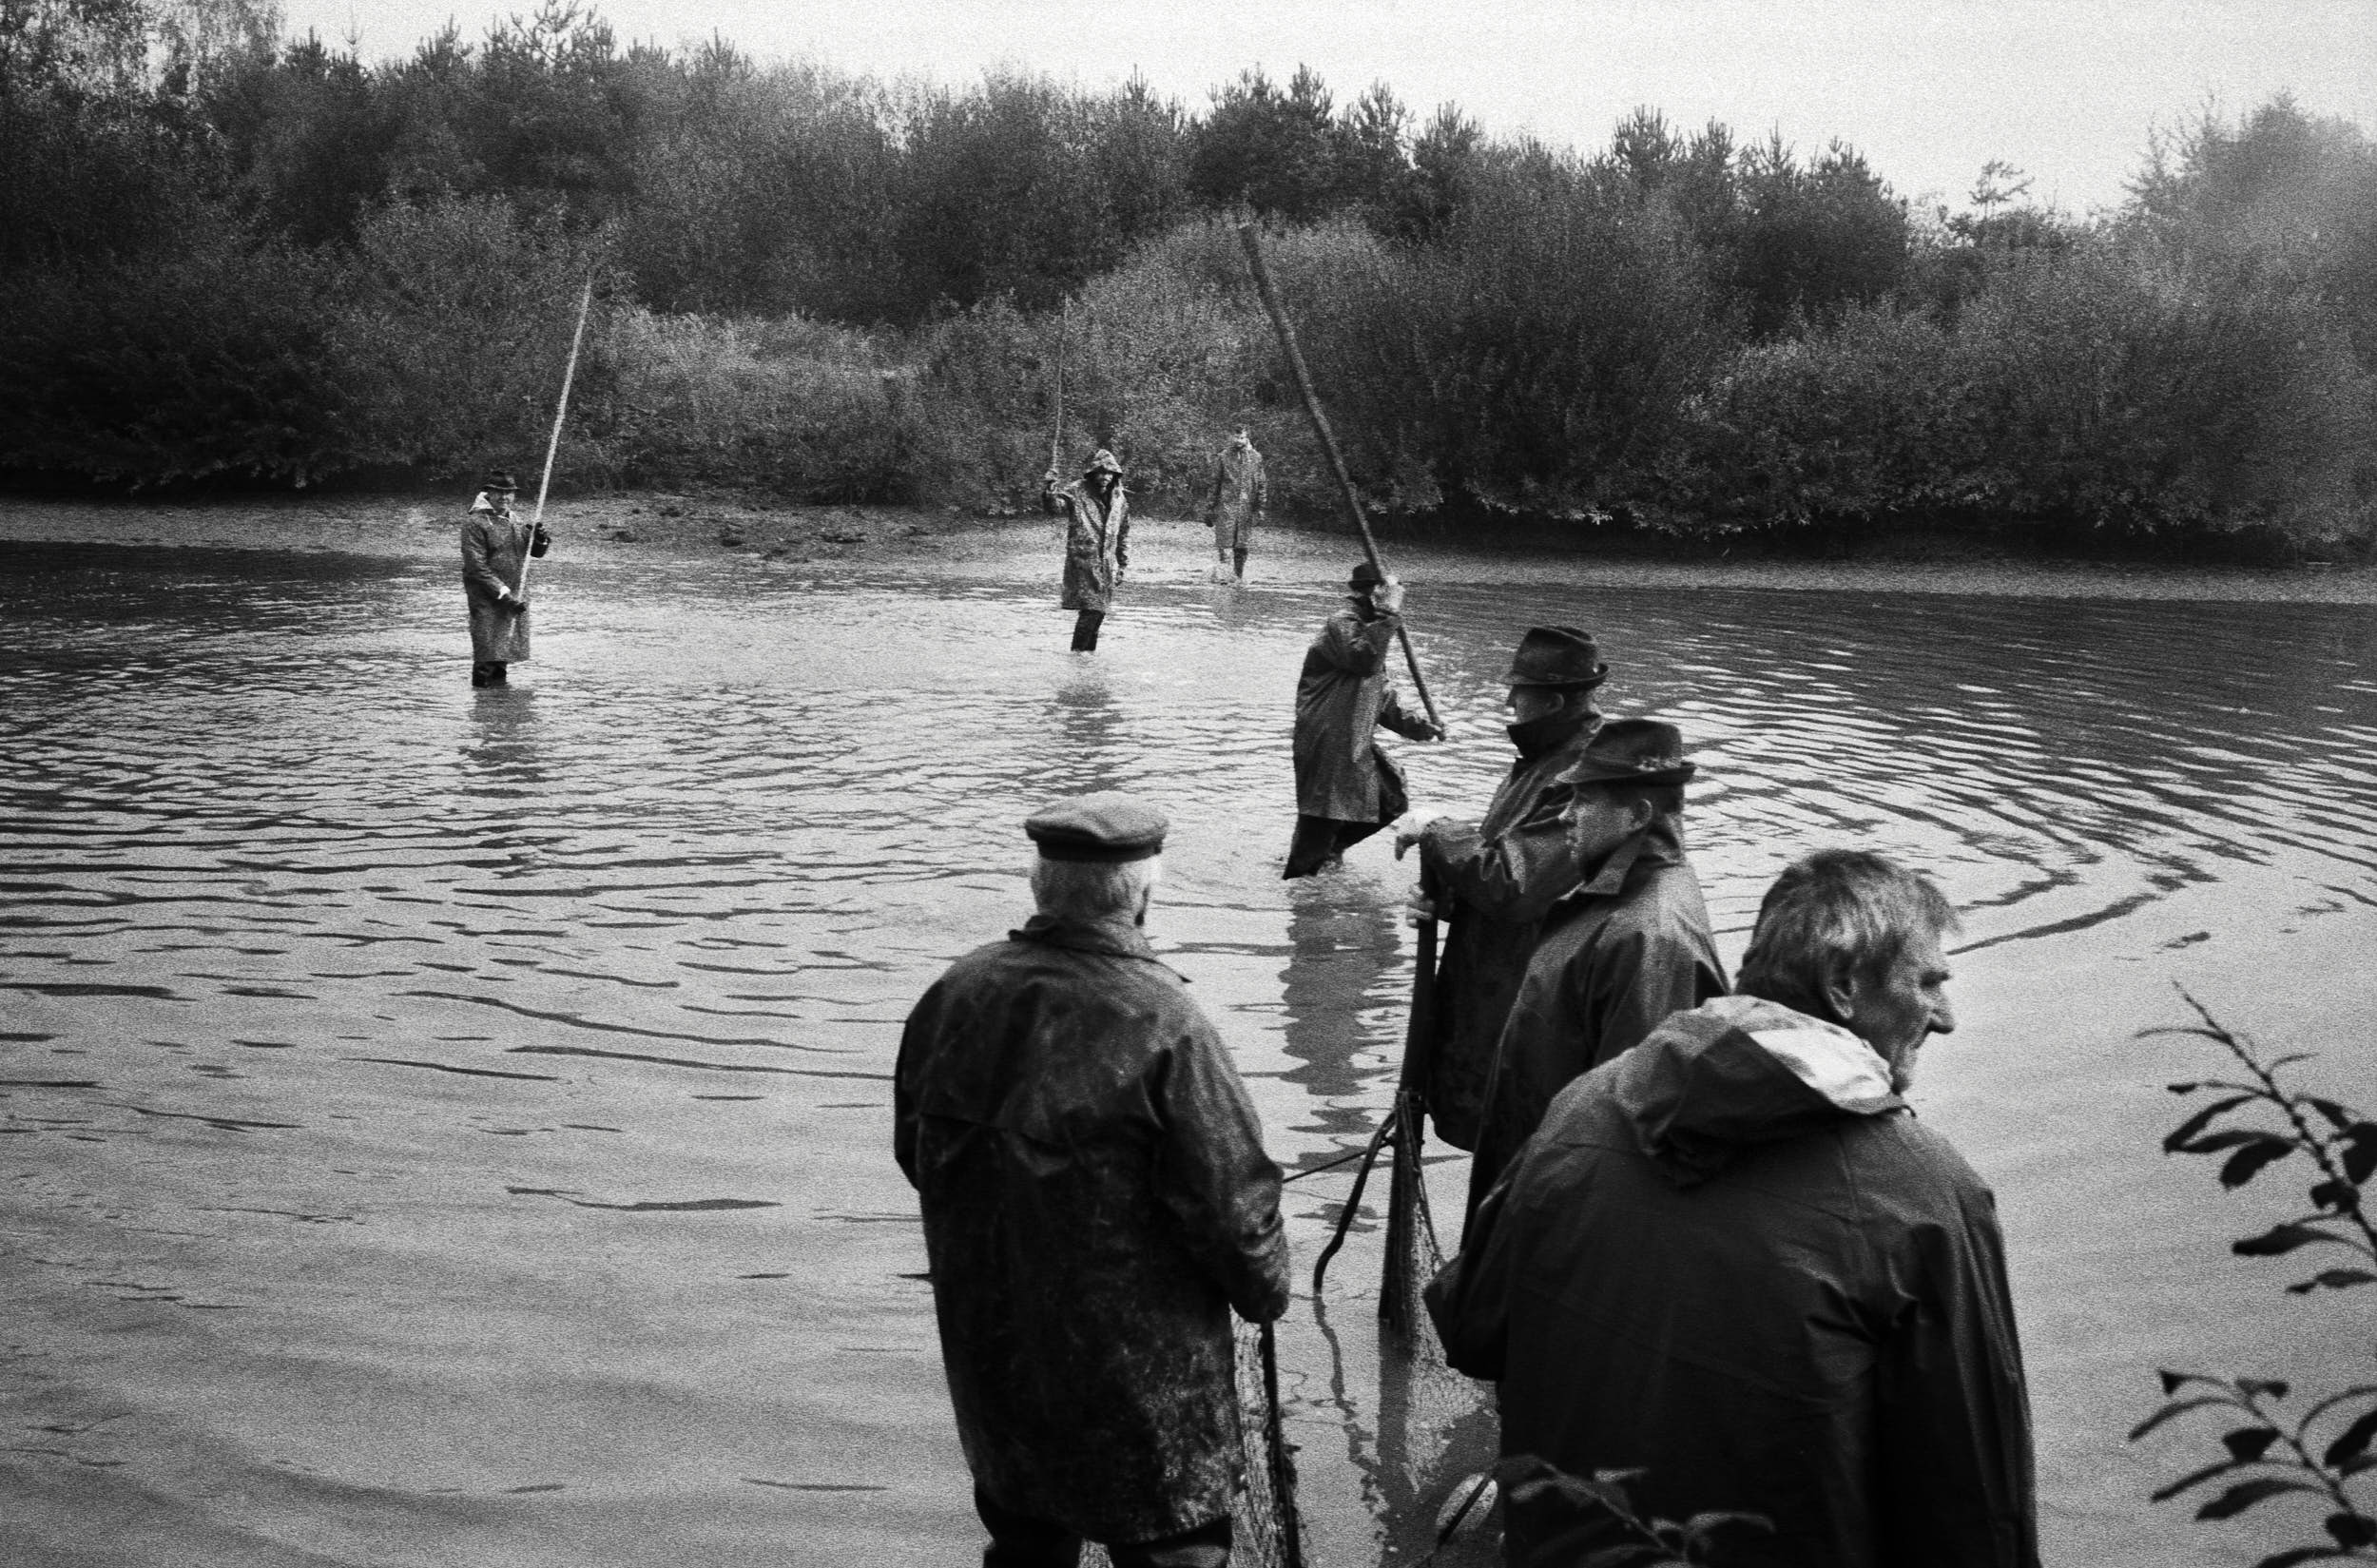 Group of fishermen in a pond preparing for an annual catch.